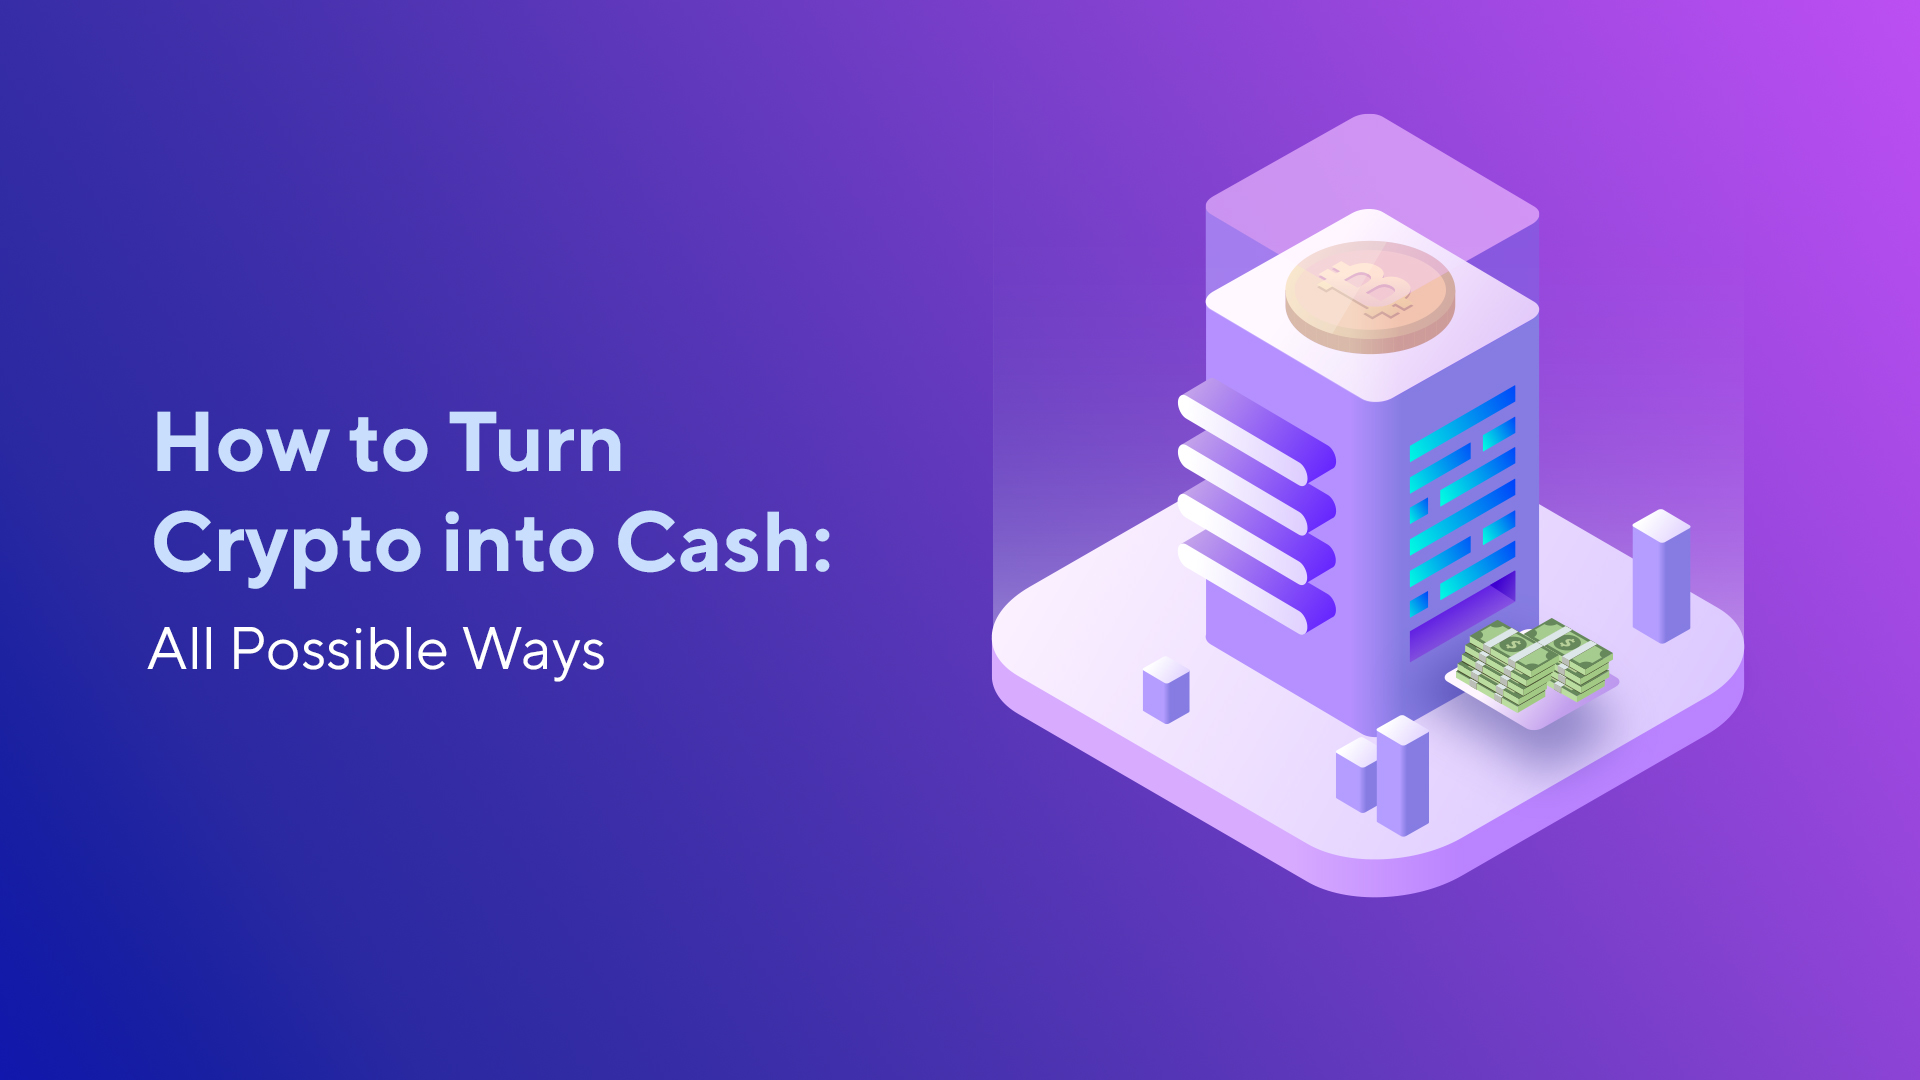 How to Turn Crypto into Cash: All Possible Ways